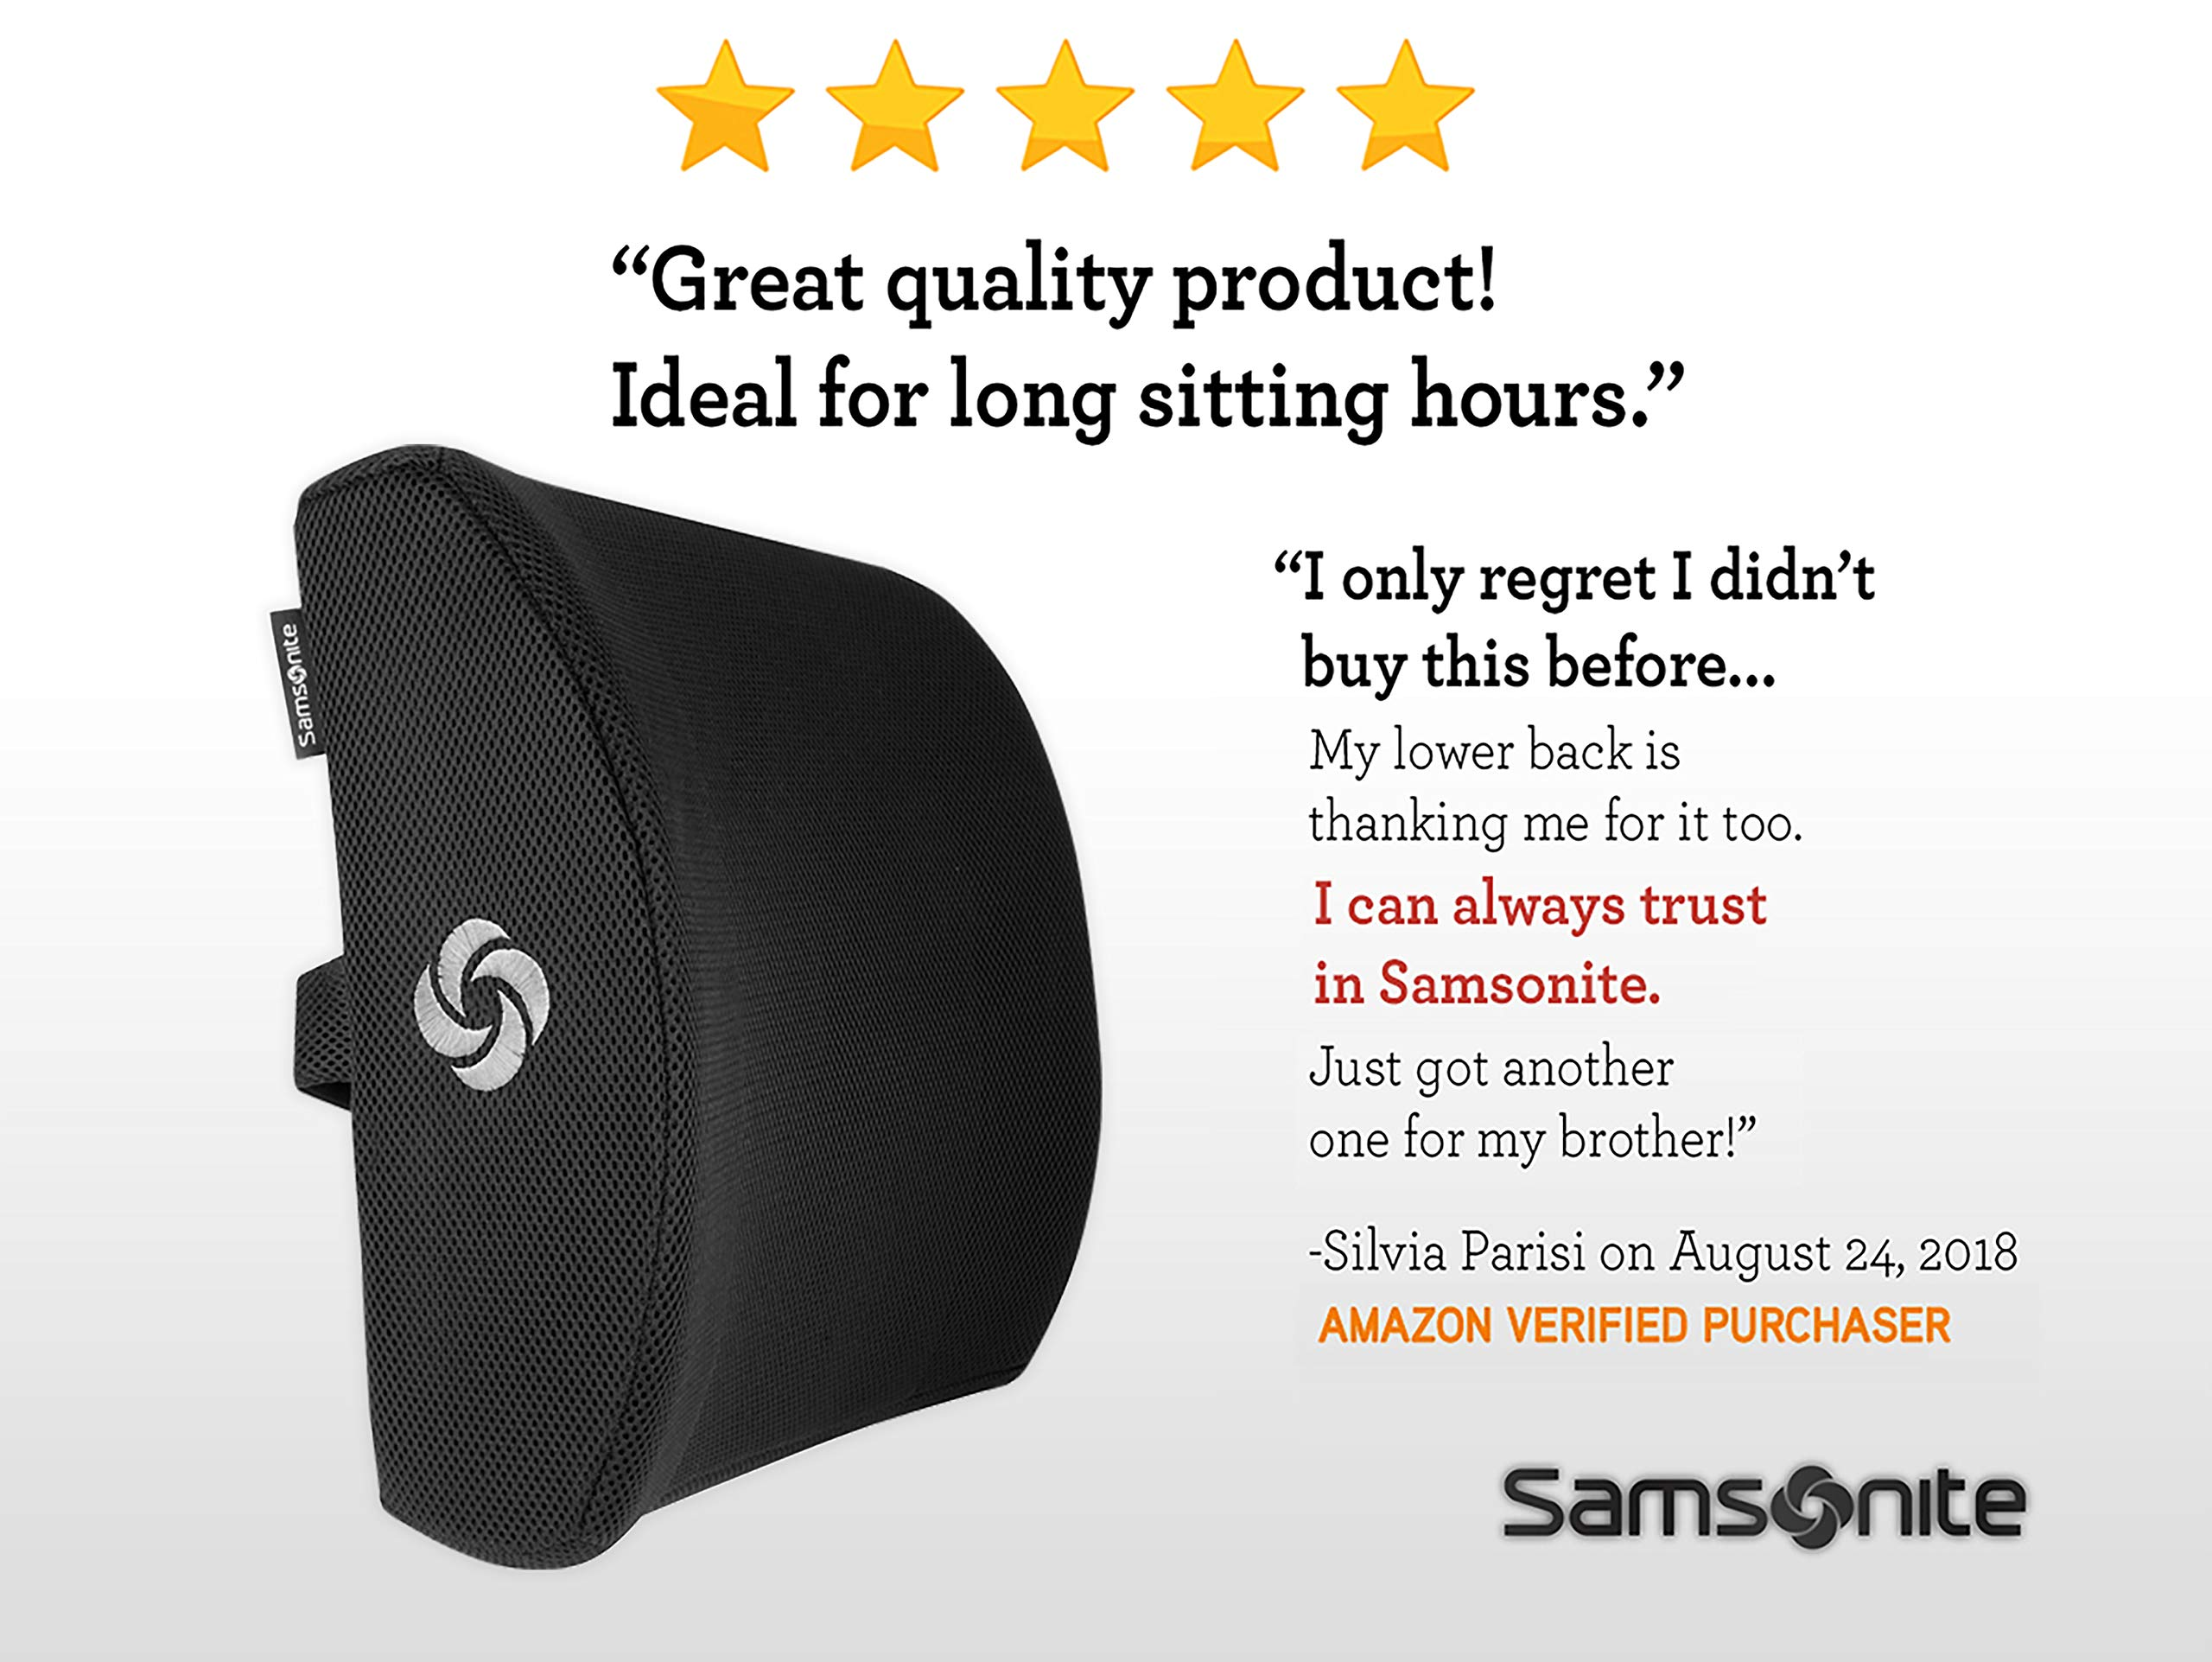 Samsonite SA5244 - Ergonomic Lumbar Support Pillow - Helps Relieve Lower Back Pain - 100% Pure Memory Foam - Improves Posture - Fits Most Seats - Breathable Mesh - Washable Cover - Adjustable Strap by Samsonite (Image #7)